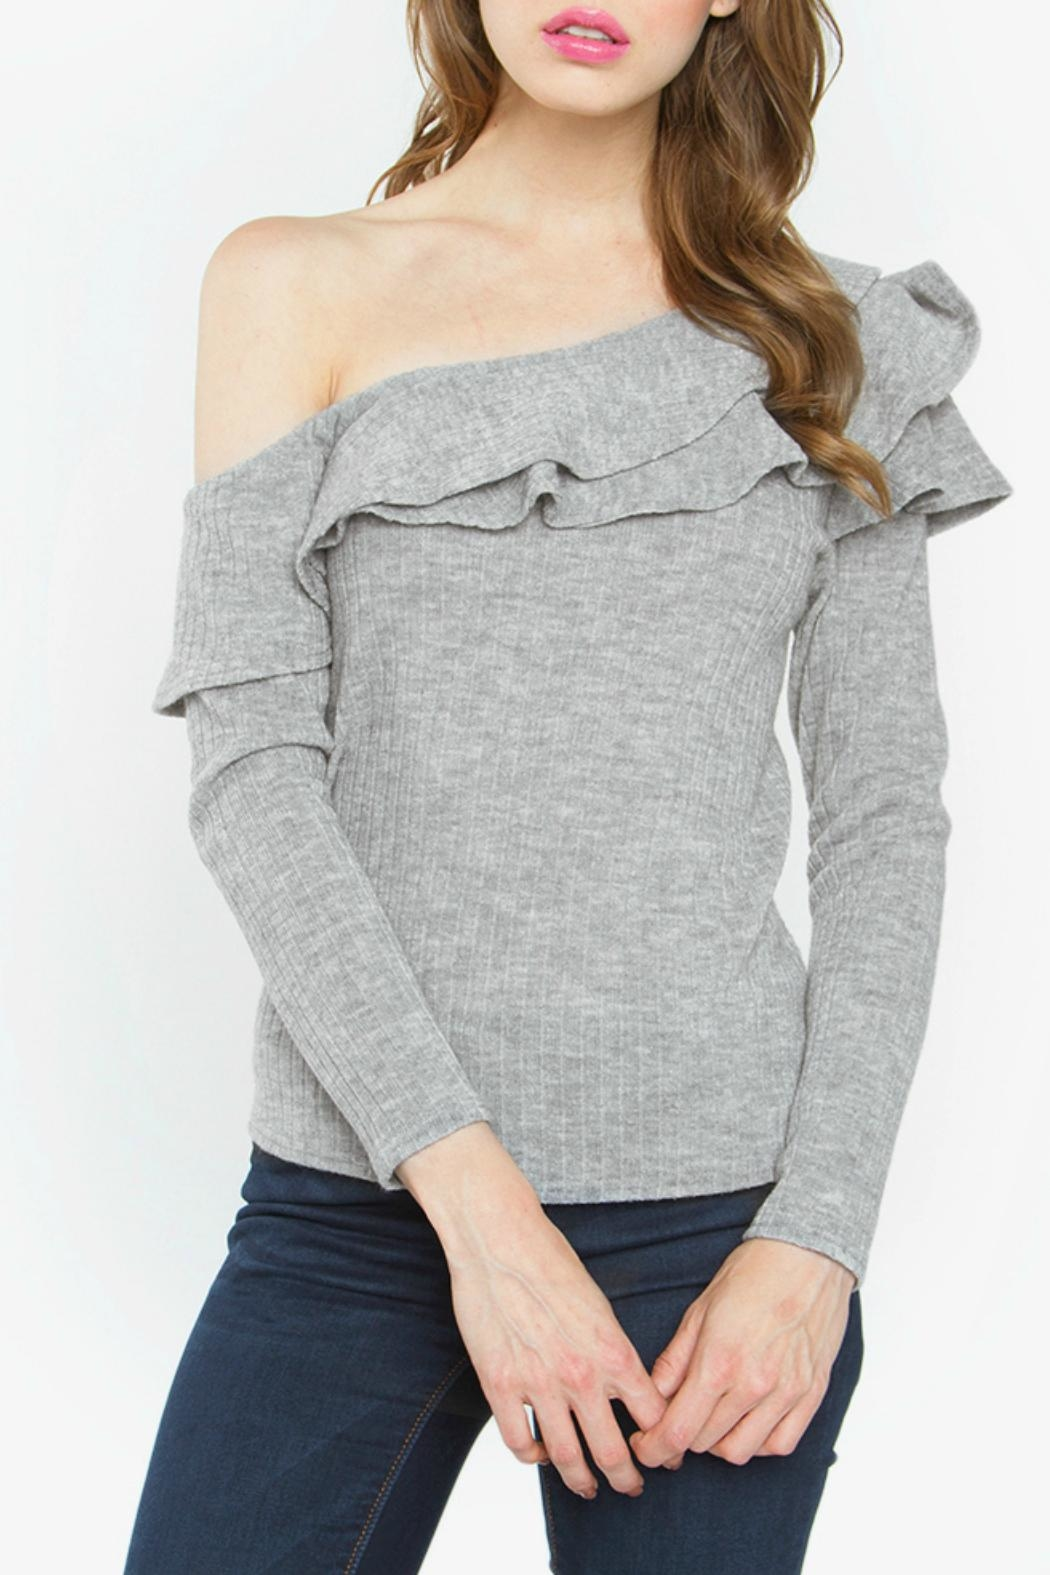 Sugar Lips Grey One Shoulder Top - Front Cropped Image